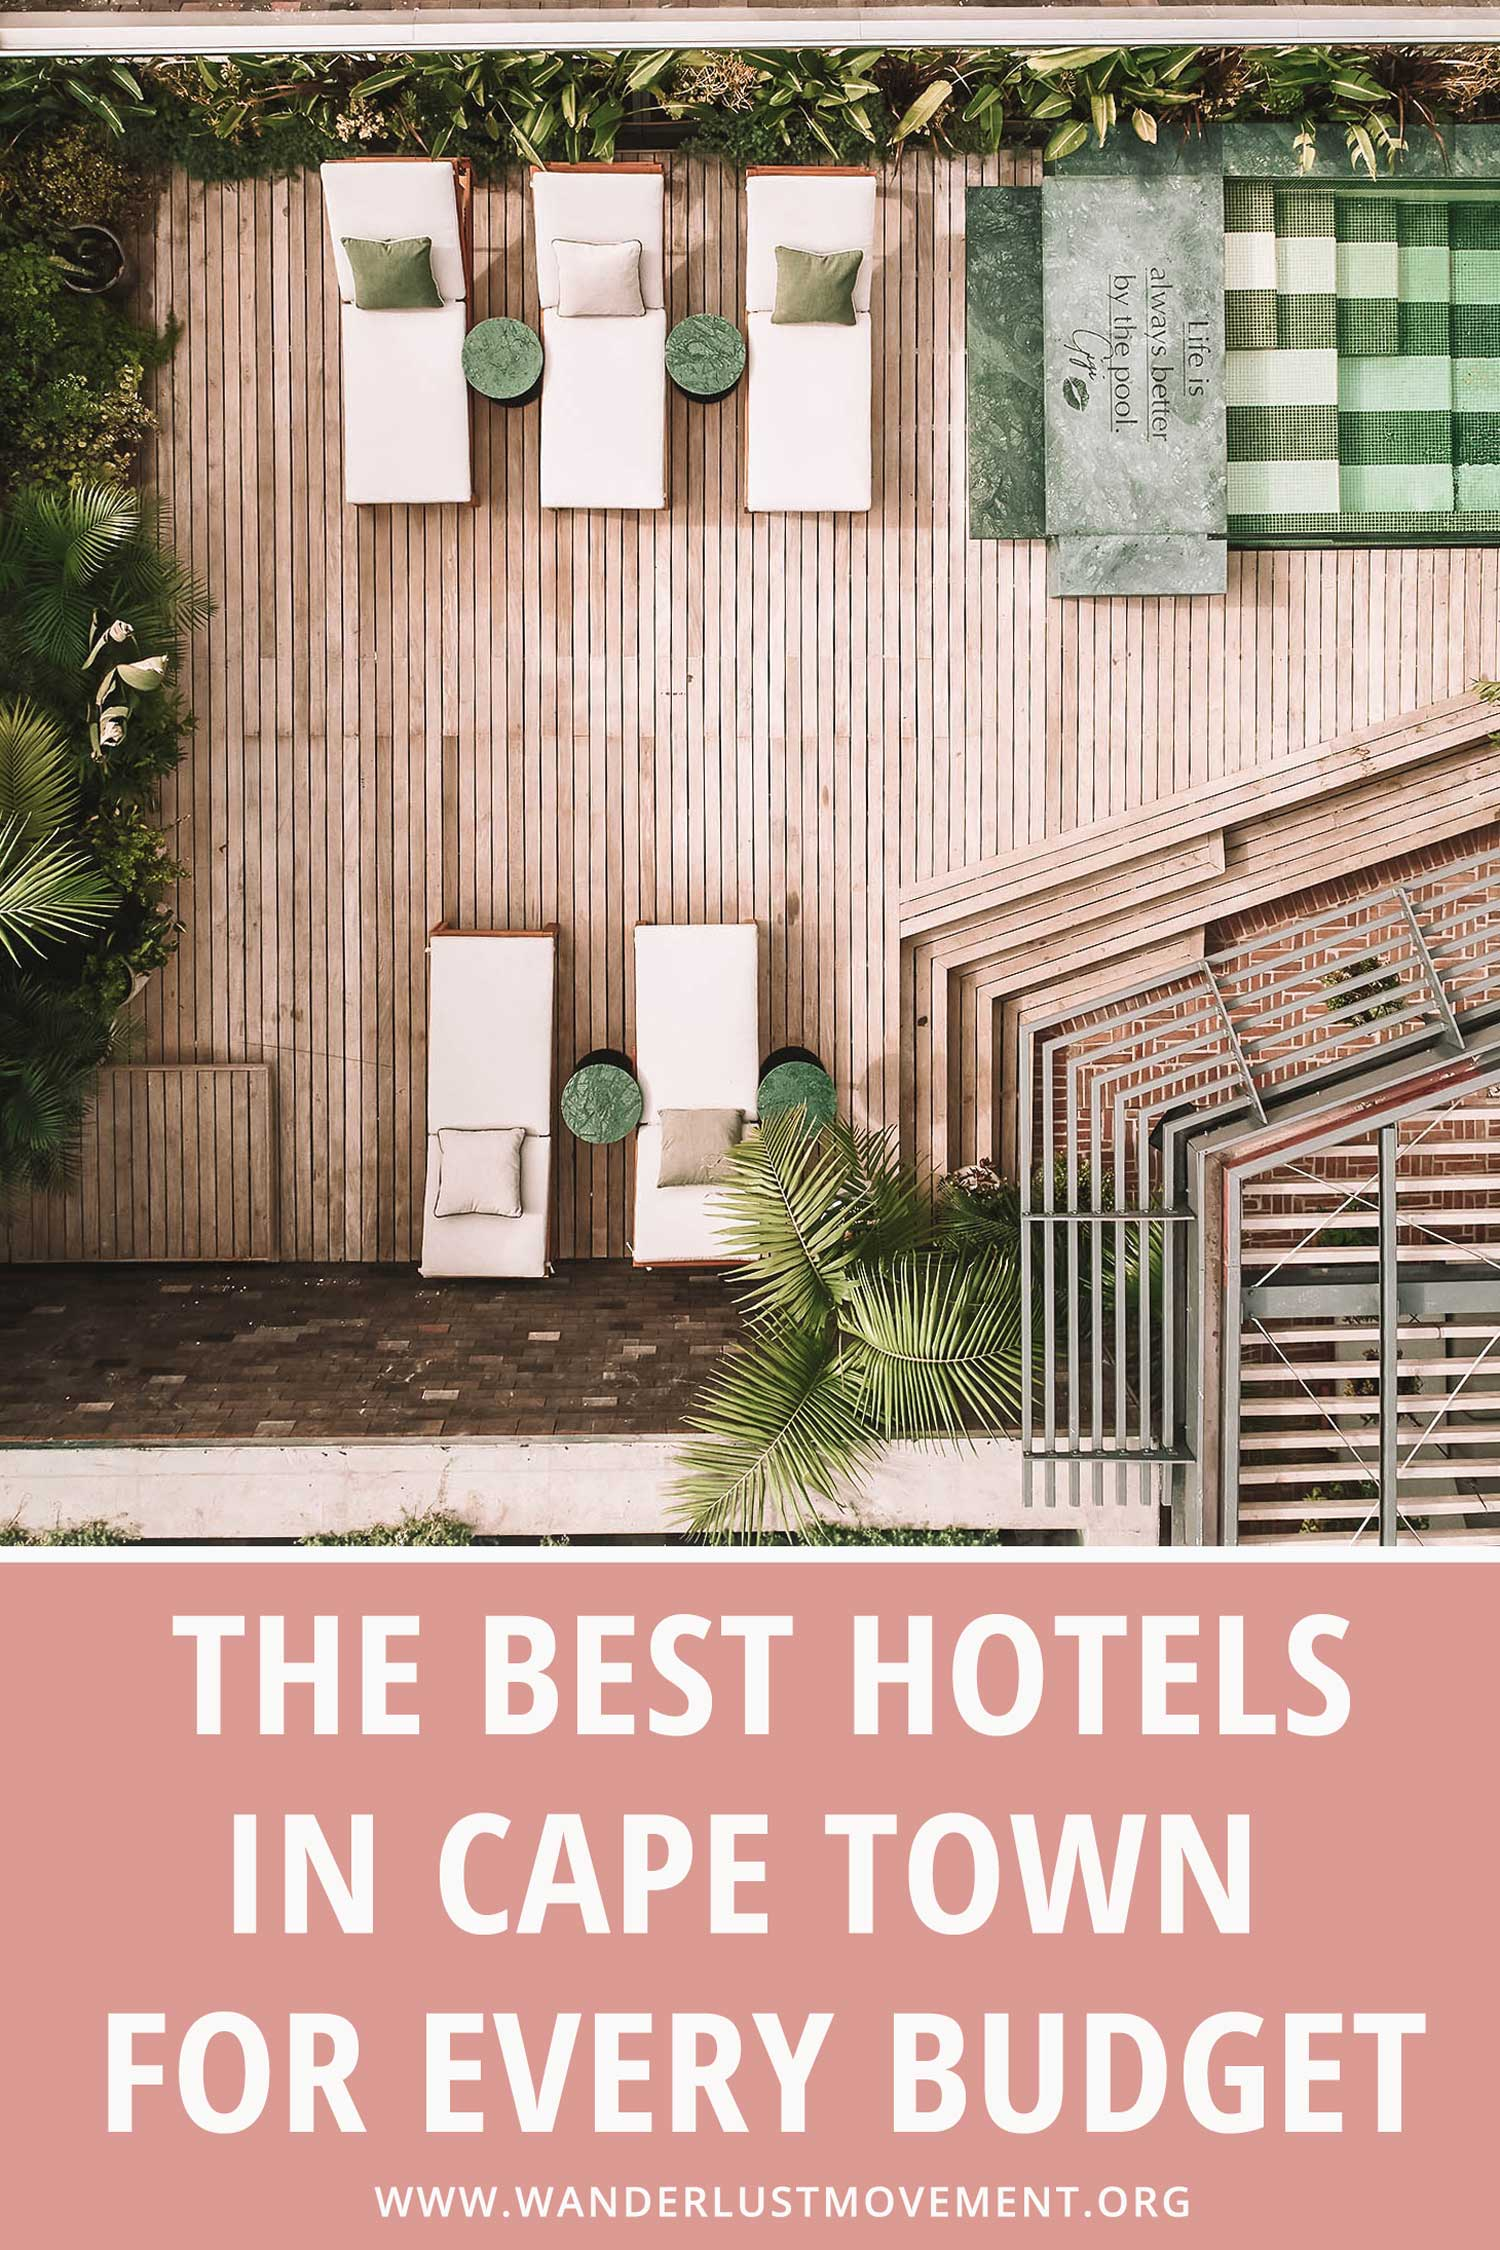 Planning a trip to Cape Town, South Africa? Here\'s a list of the best hotels in Cape Town for every budget! Whether you want to stay in bougie 5-star hotels with private views of Table Mountain National Park, a boutique hotel with a rooftop pool or a dorm room at a top-rated hostel - I\'ve got all your accommodation needs covered! #southafrica #capetown #travel #africatravel #hotels